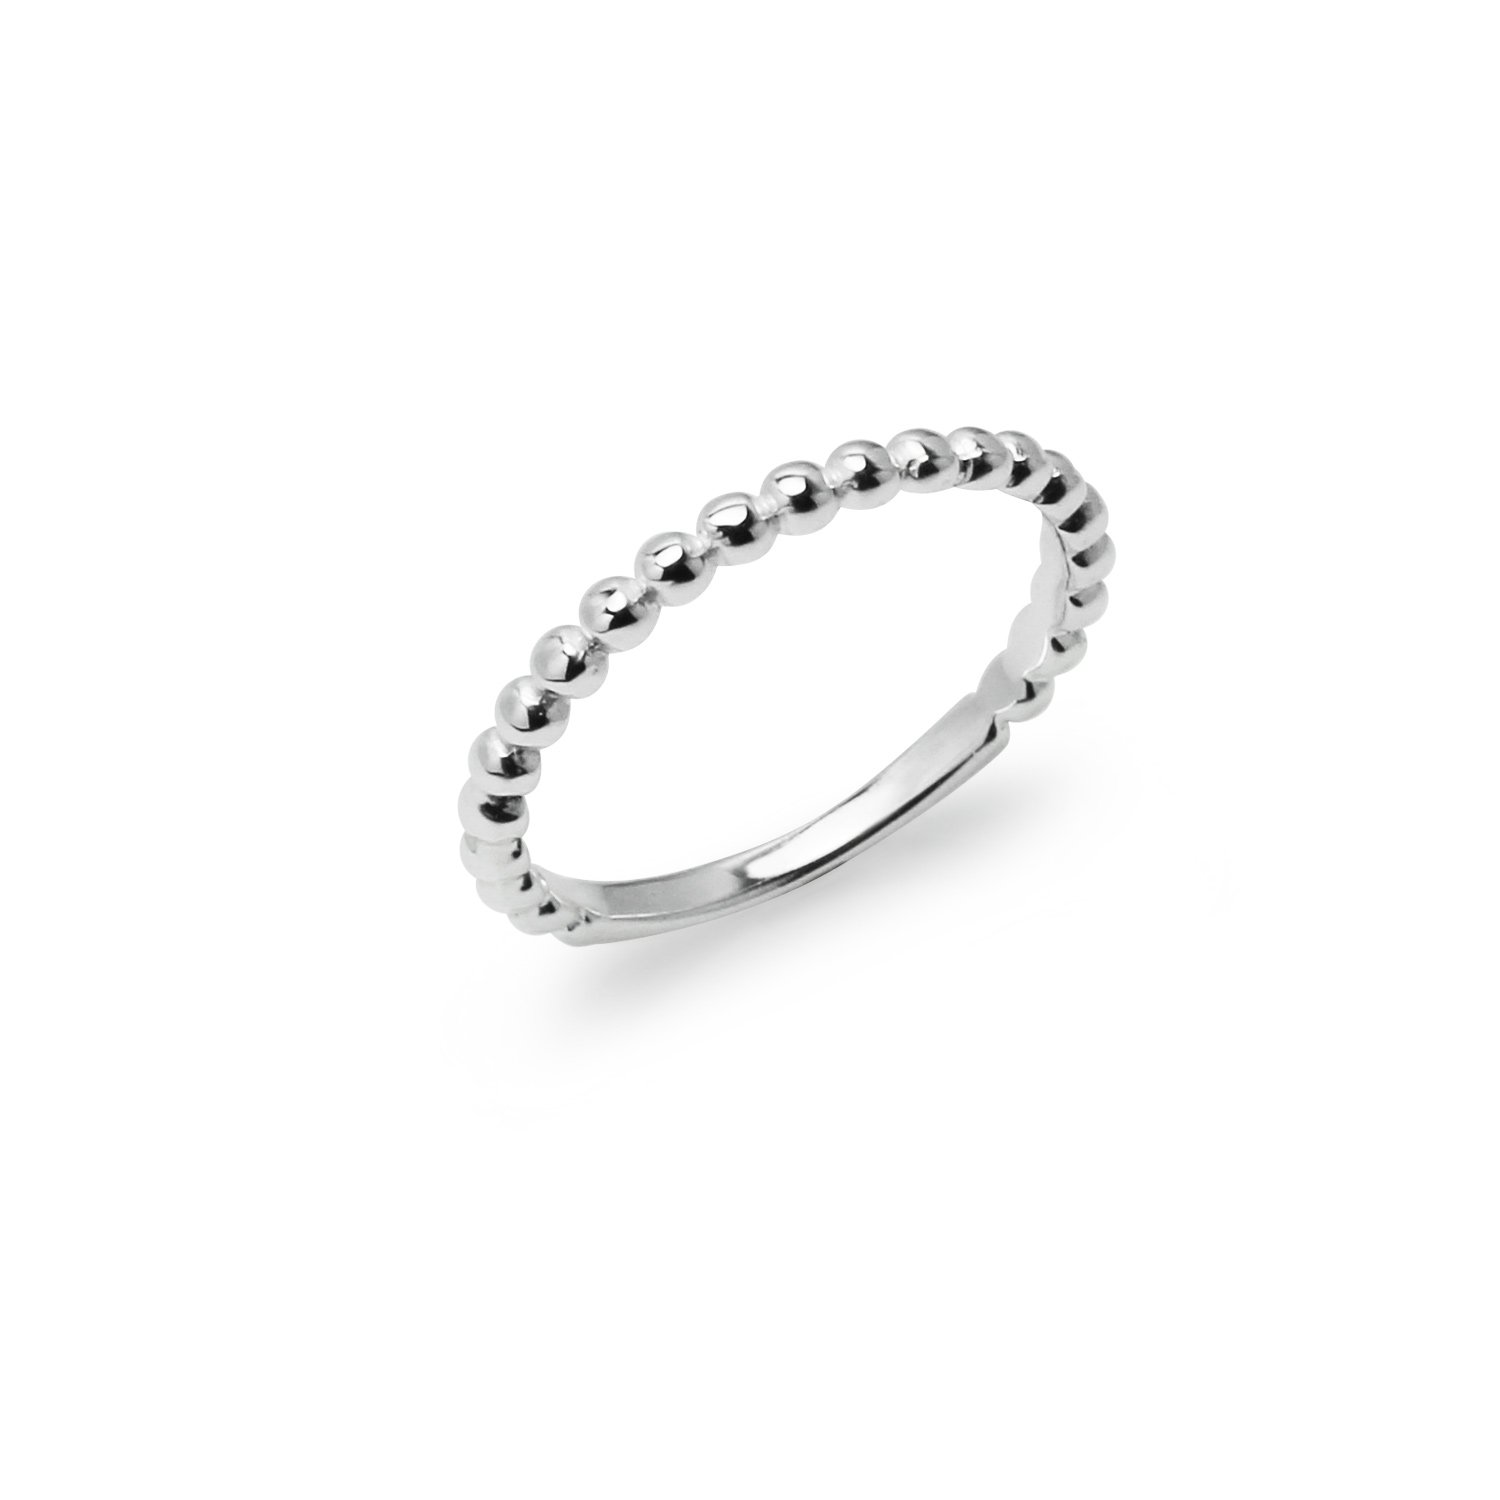 River Island Jewelry - 925 Sterling Silver Very Fine Stackable Beaded Band Wedding Ring - Size 5